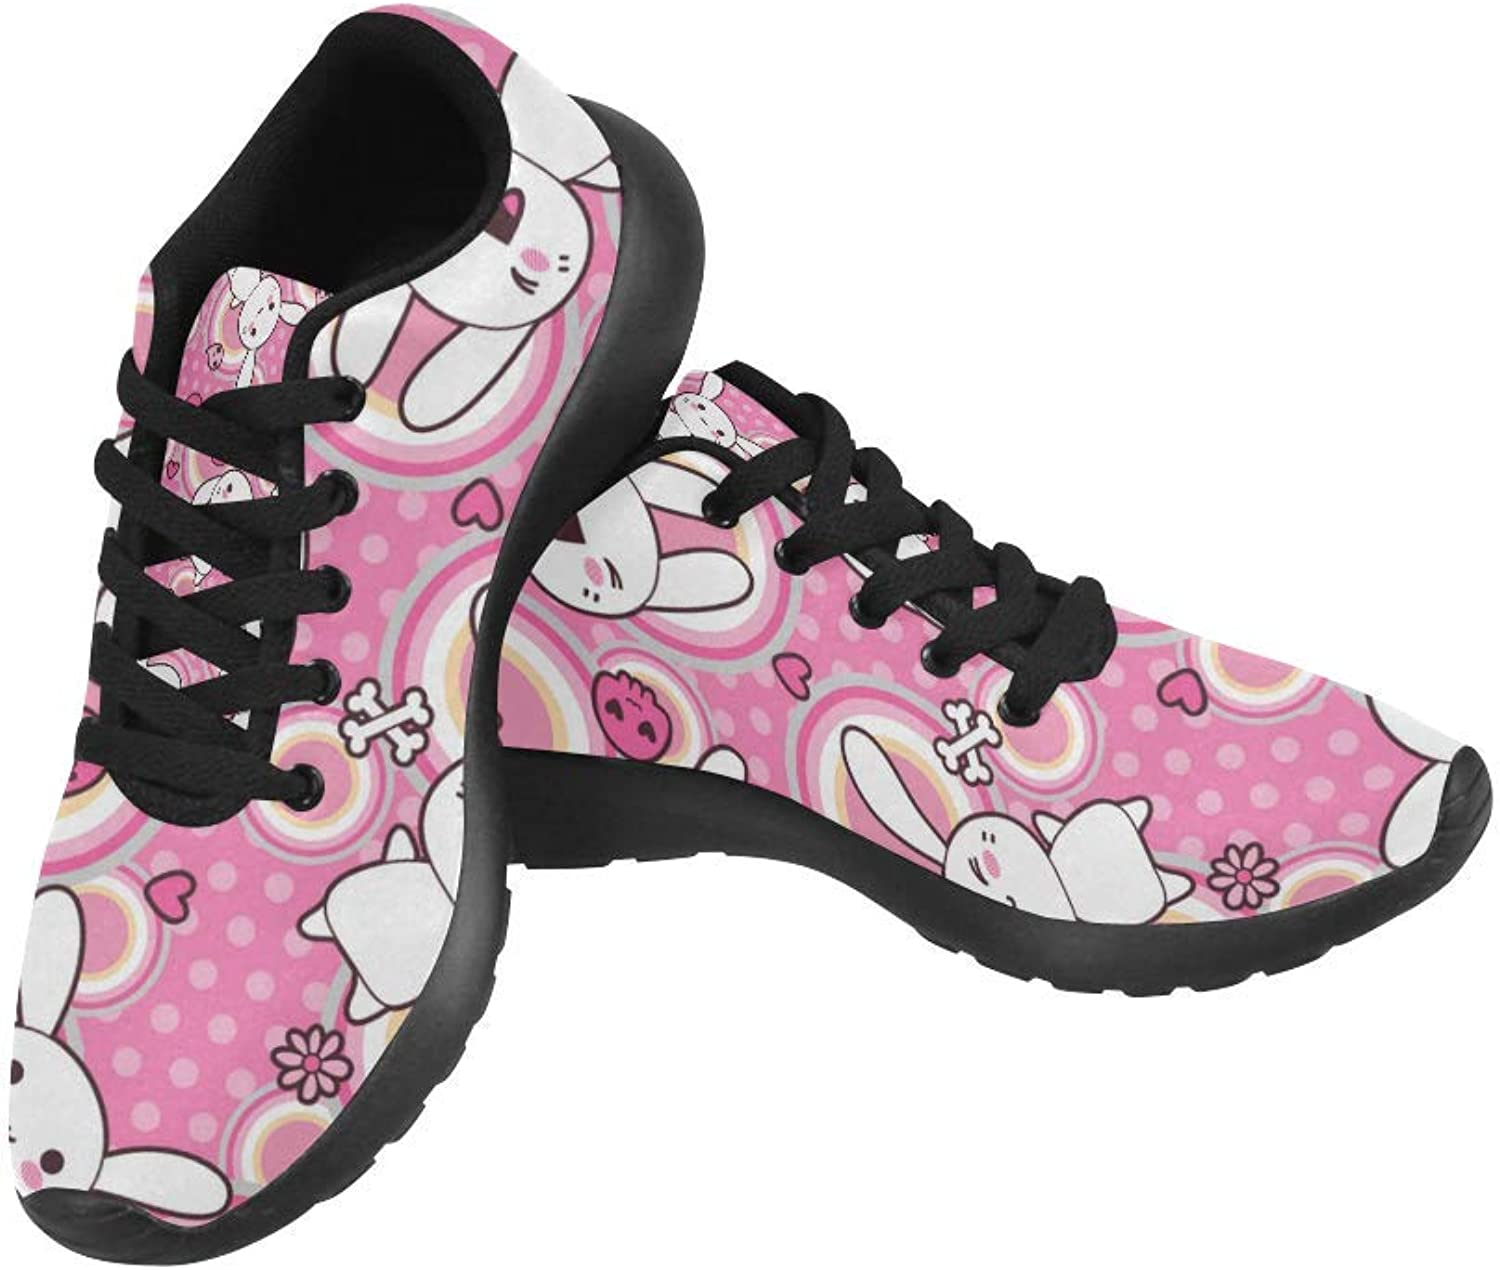 InterestPrint Kawaii Doodle Pattern Print on Women's Running shoes Casual Lightweight Athletic Sneakers US Size 6-15